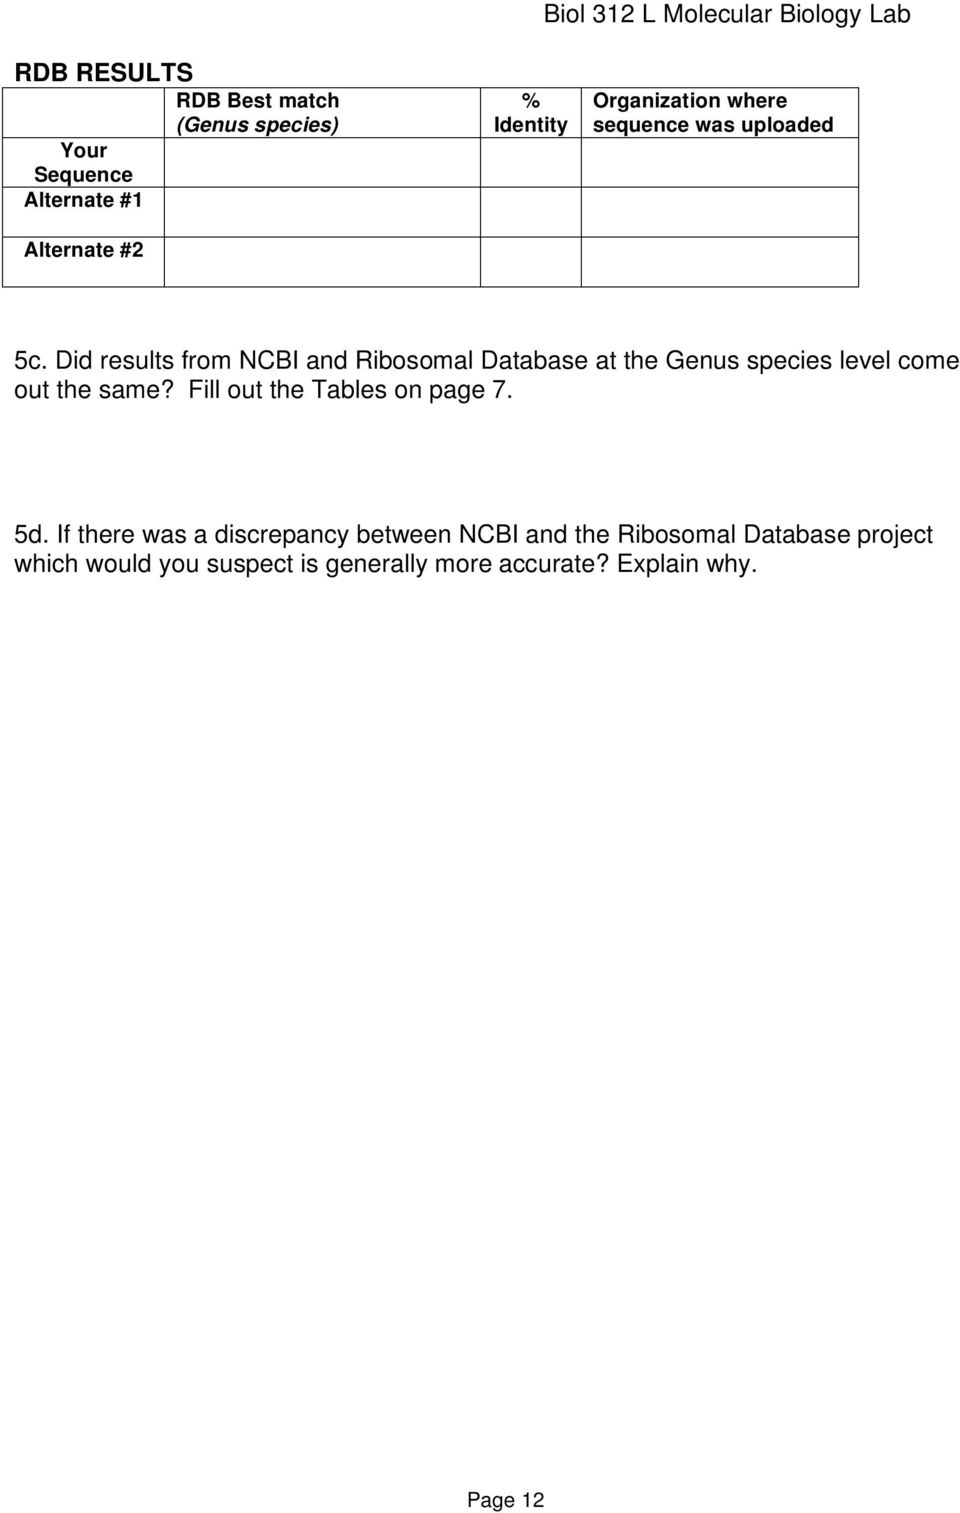 Did results from NCBI and Ribosomal Database at the Genus species level come out the same?